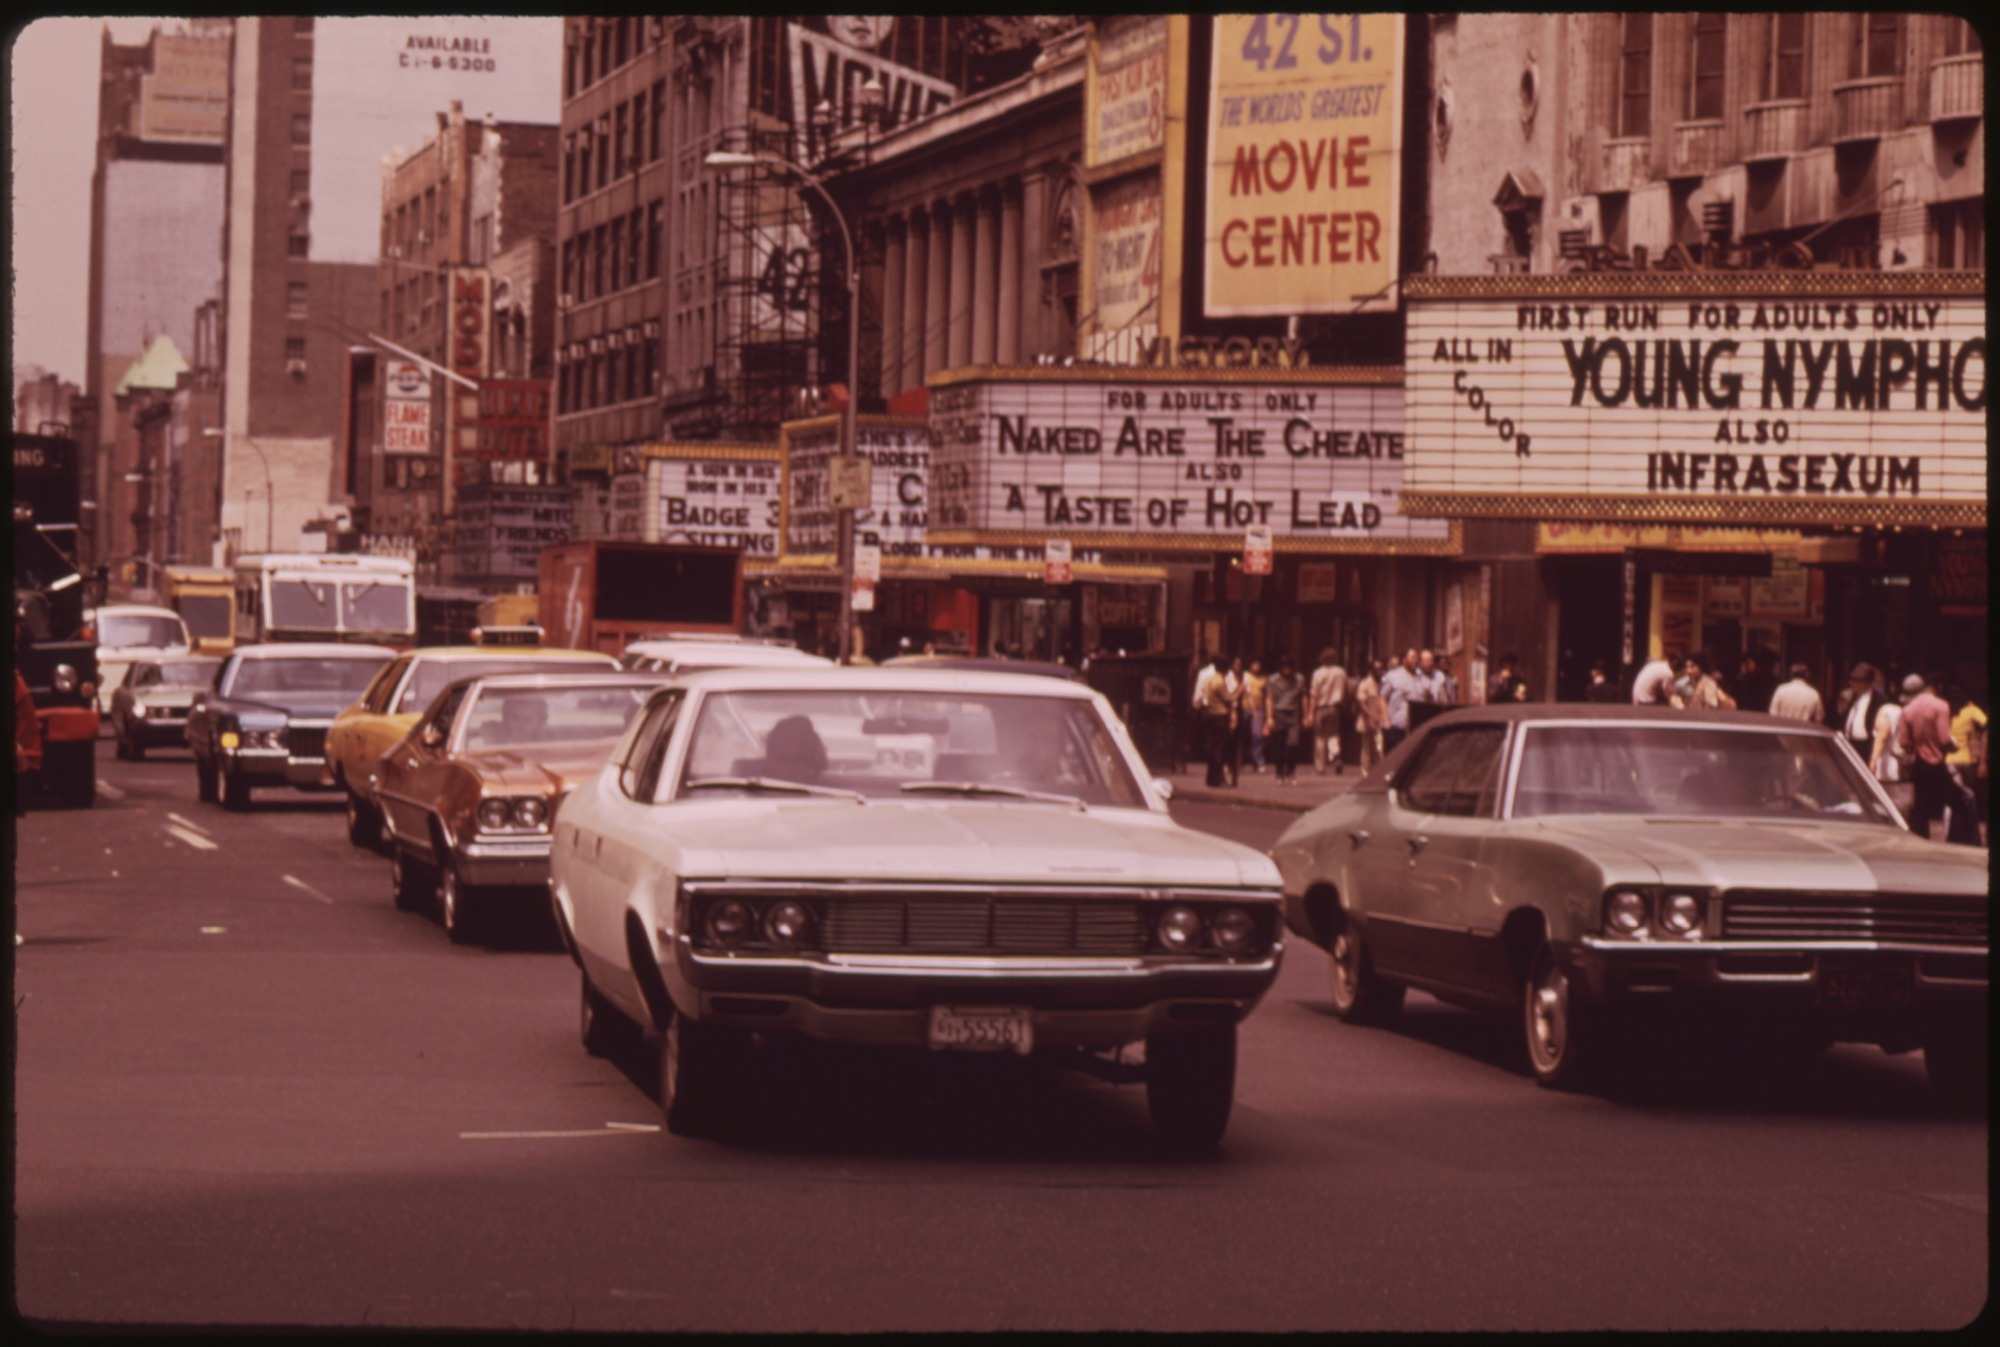 42nd_Street_just_west_of_Seventh_Avenue_